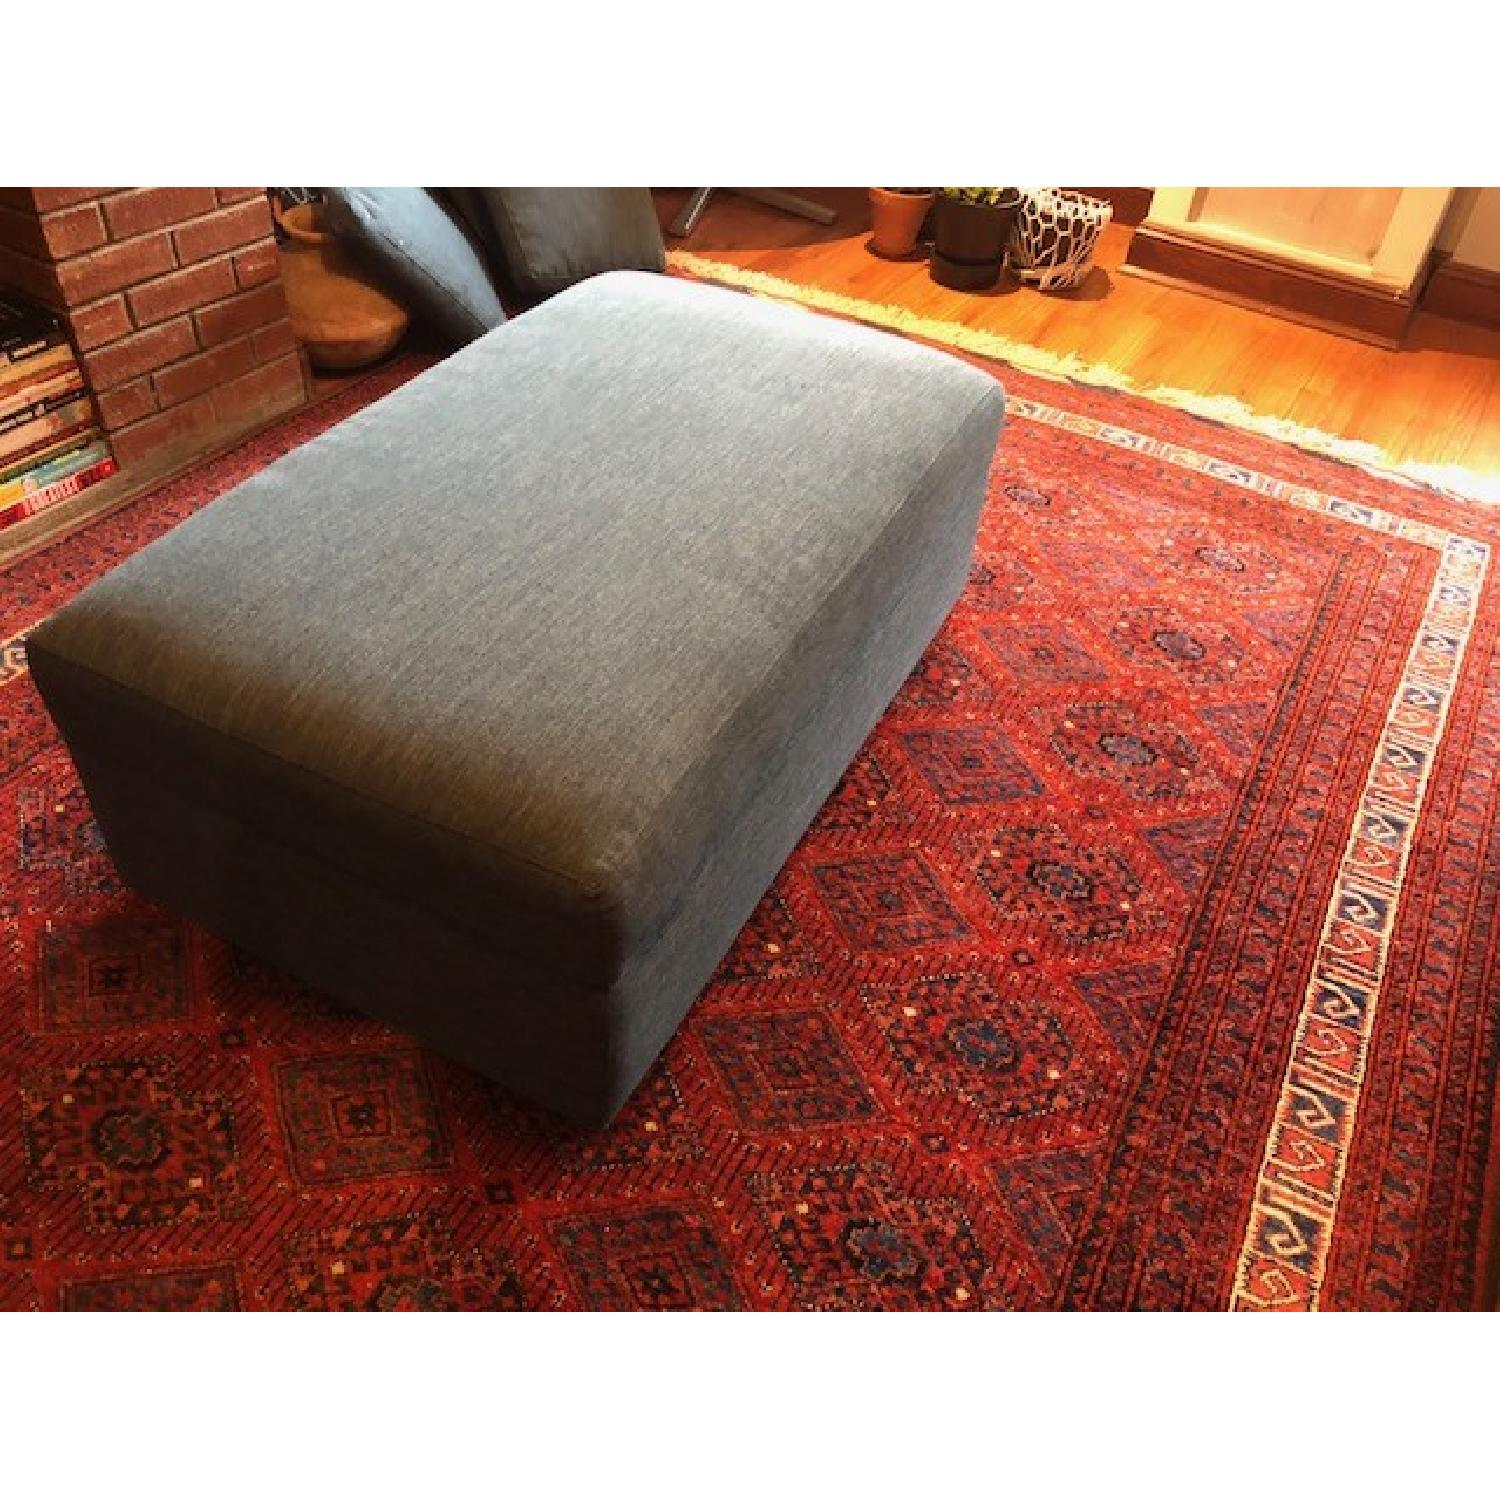 Crate & Barrel Lounge II Apartment Sofa & Ottoman-7